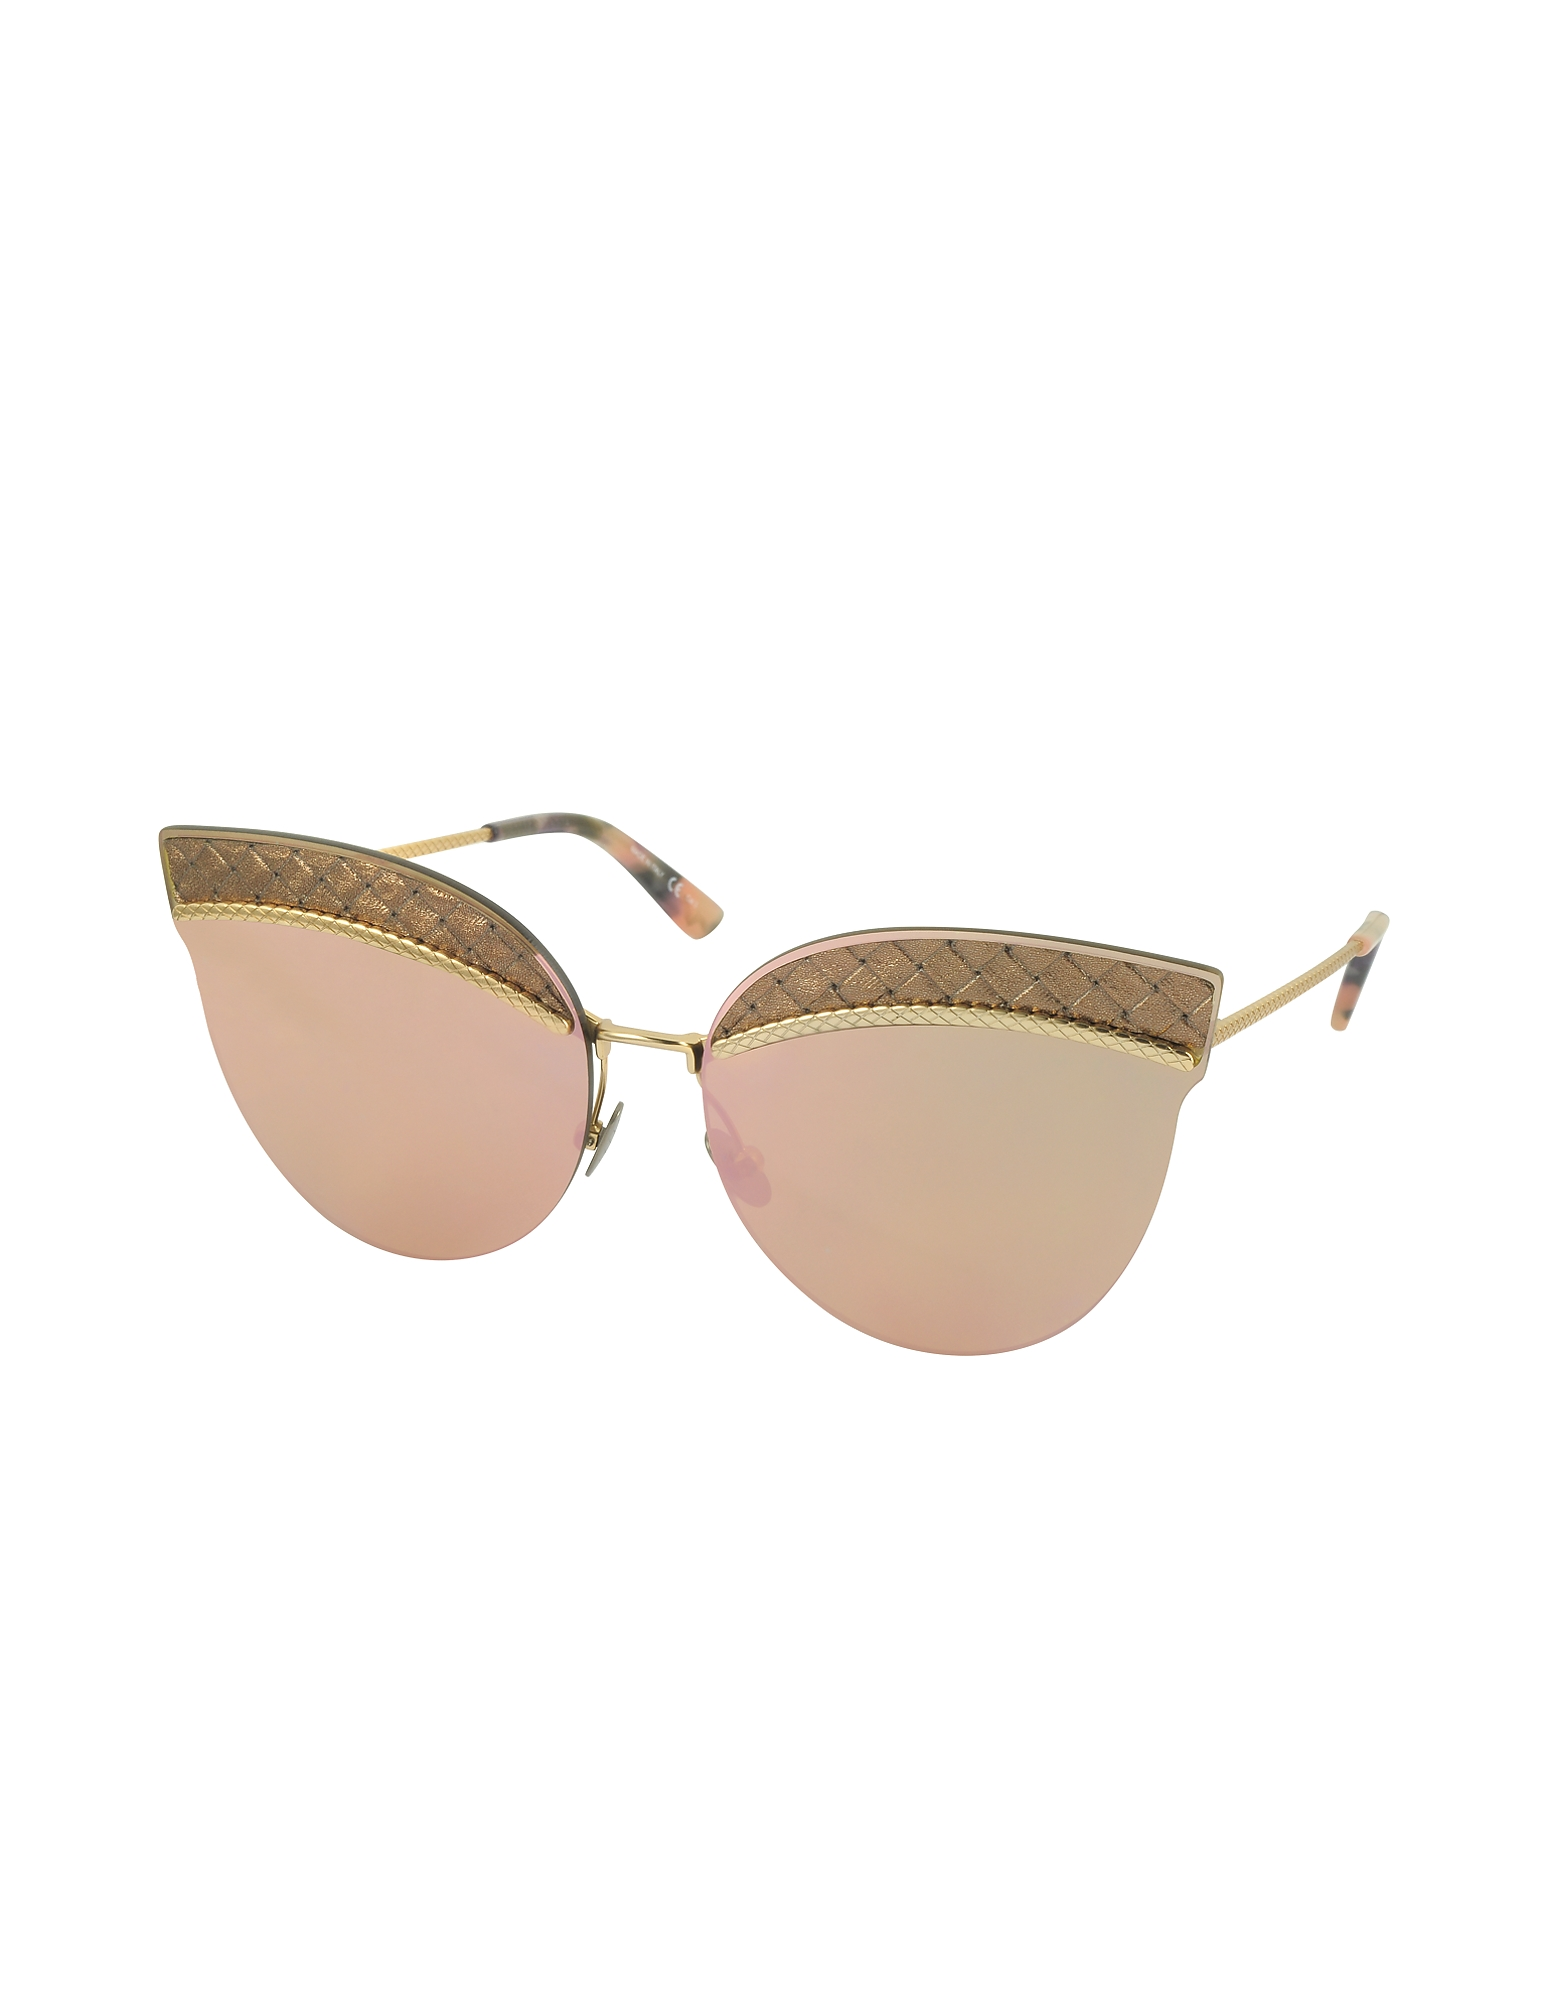 BV0101S Metal Cat-Eye Women's Sunglasses от Forzieri.com INT